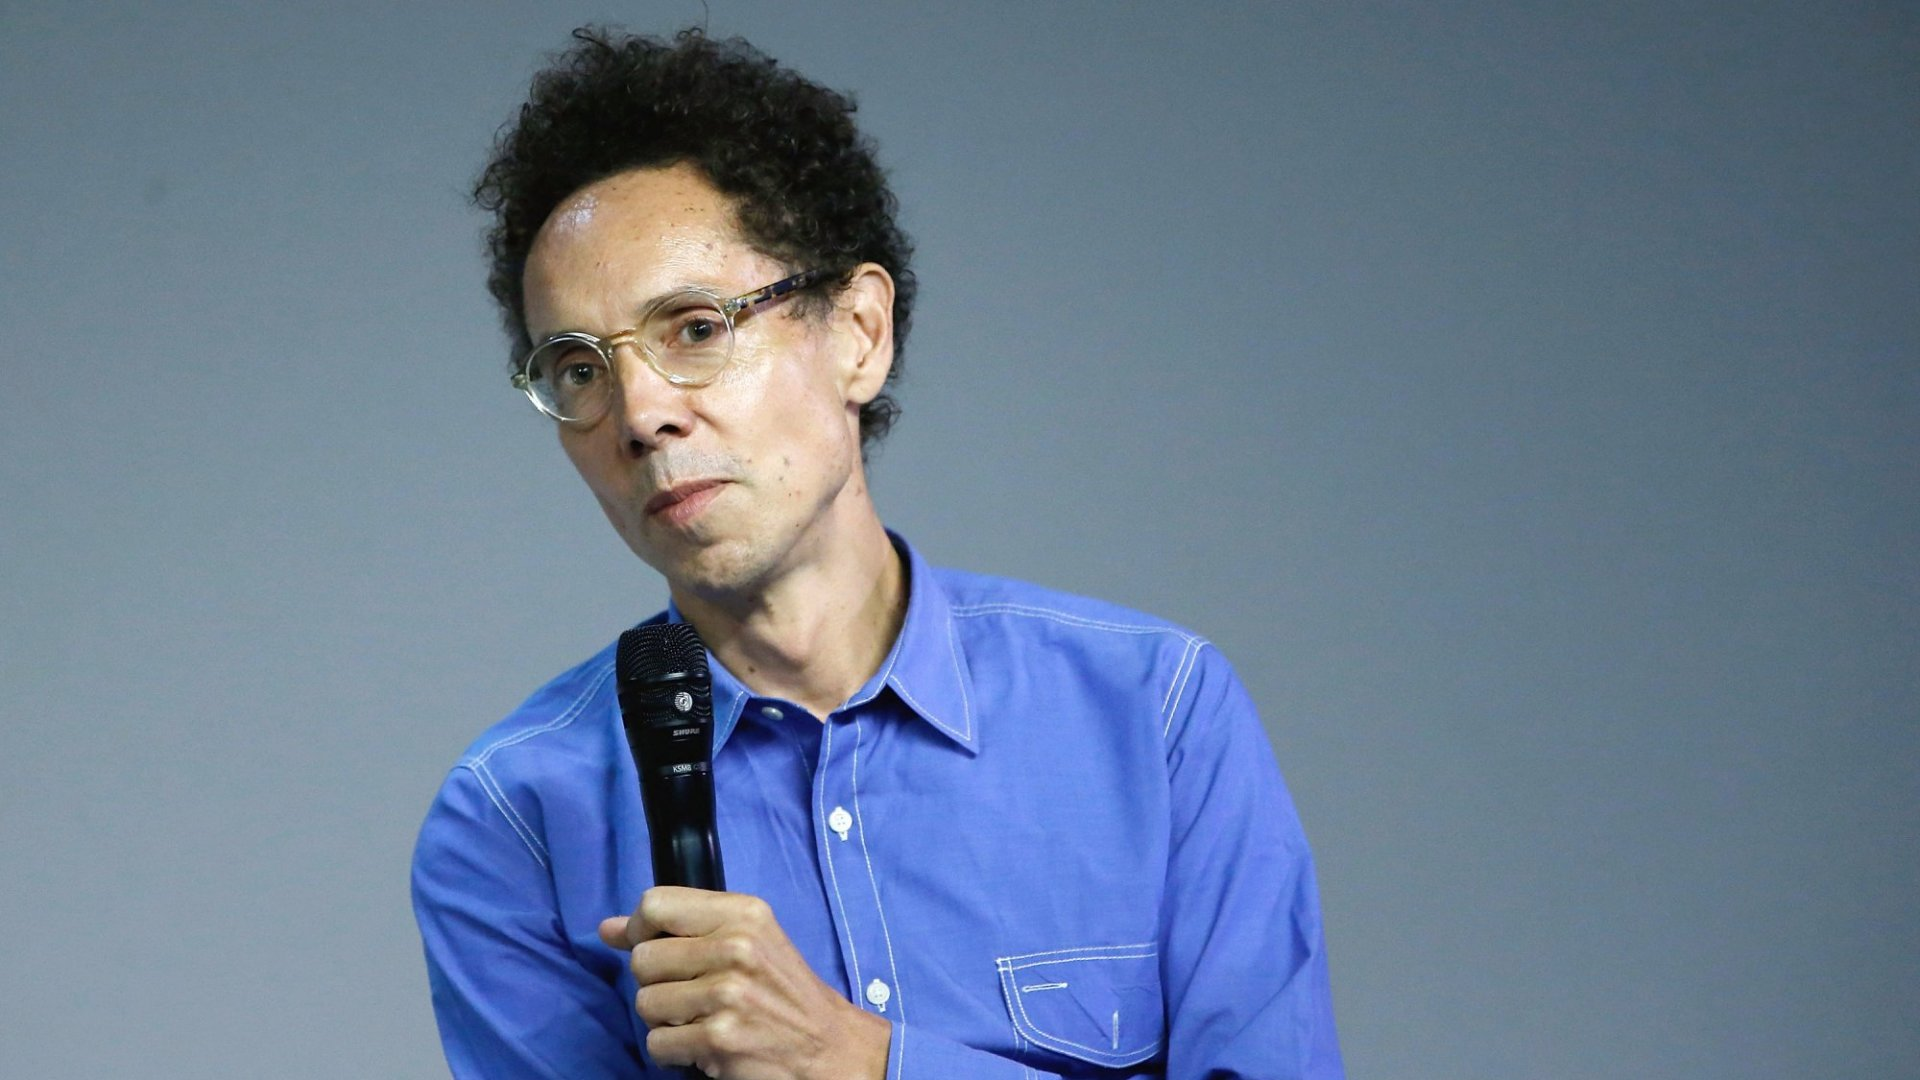 Discernment is the Communication Skill Everyone Lacks, According to Malcolm Gladwell's New Book